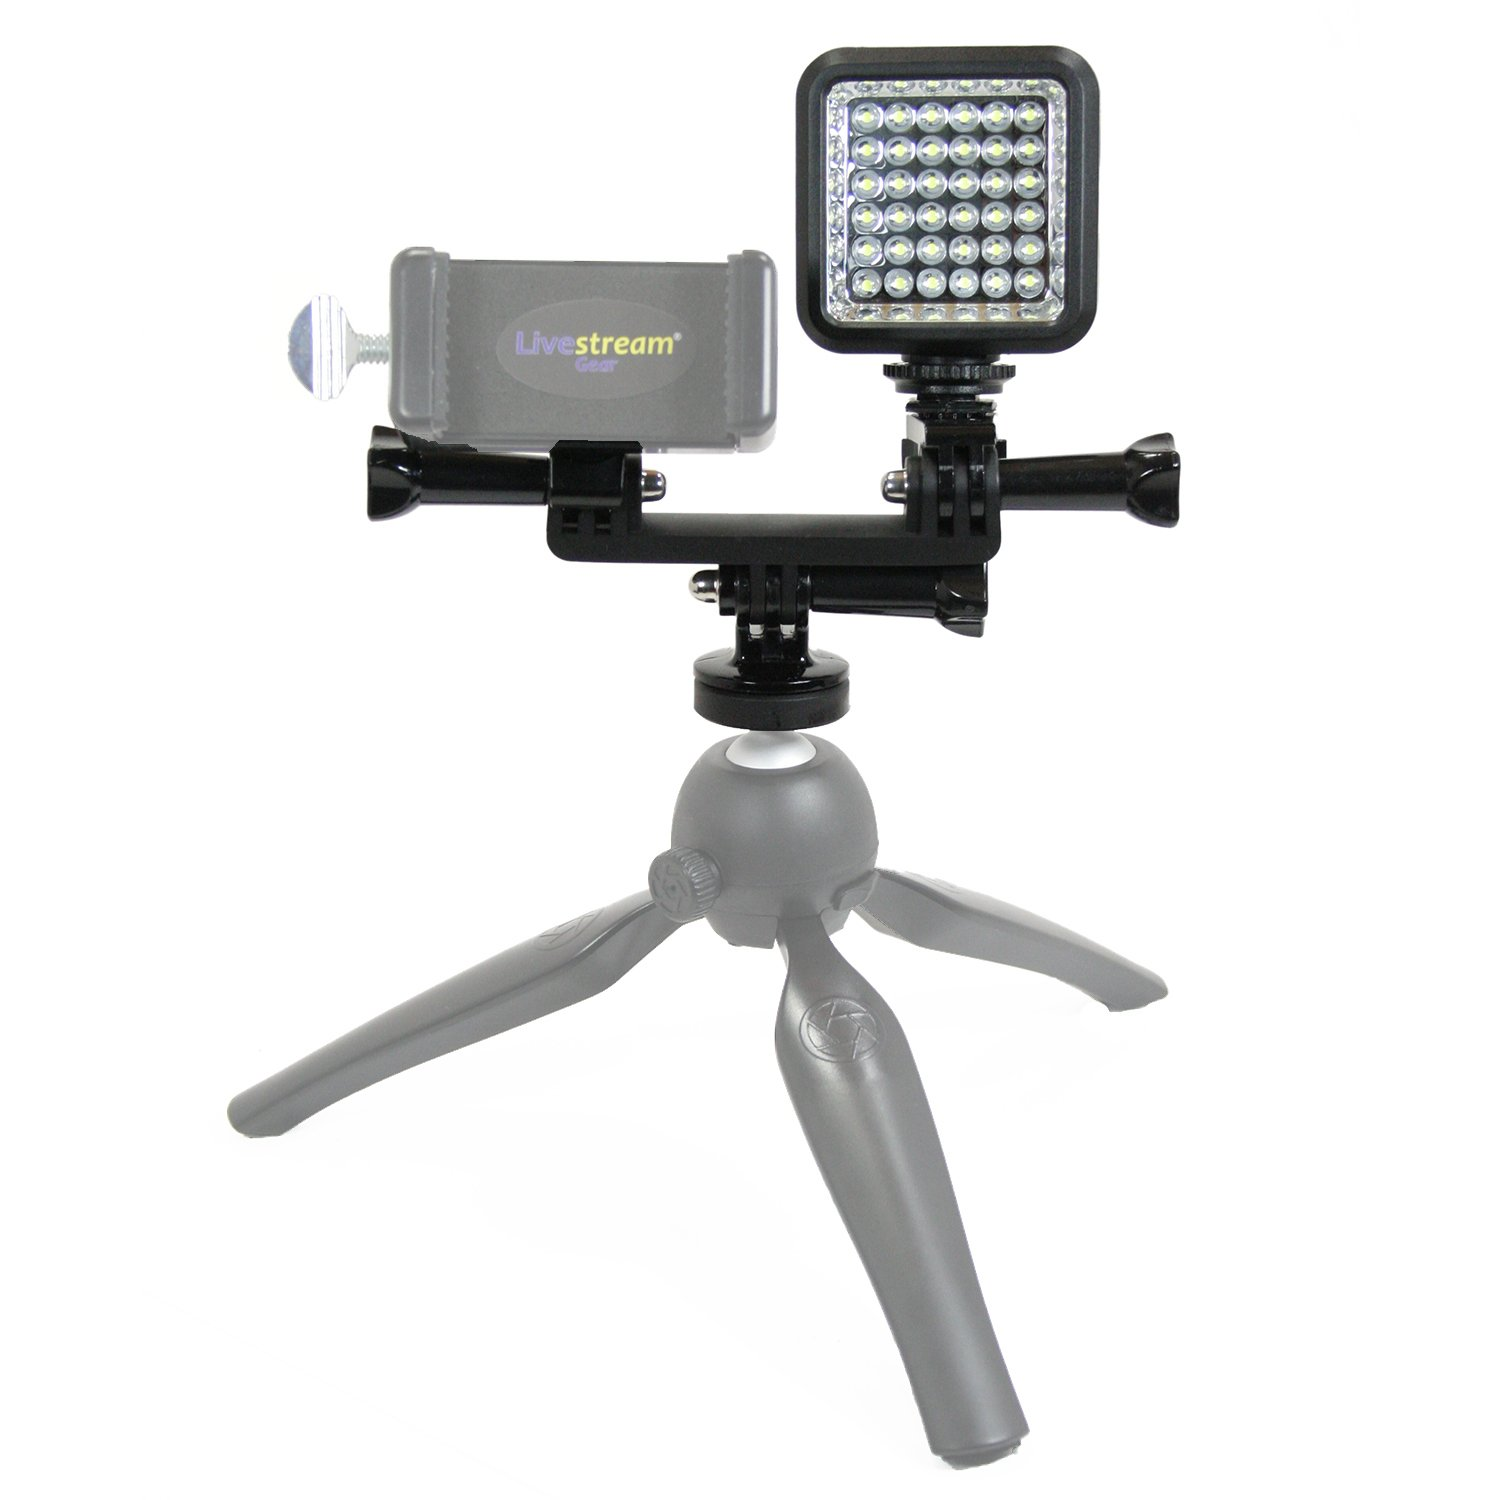 Livestream Gear - LED Dual Mount Add-On for Smartphone Tripod Setup. Enhance The Quality of Your LiveStream or Video. Also Works with Sport Cameras and DLSR. (LED & Dual Mount Add-On) by Livestream